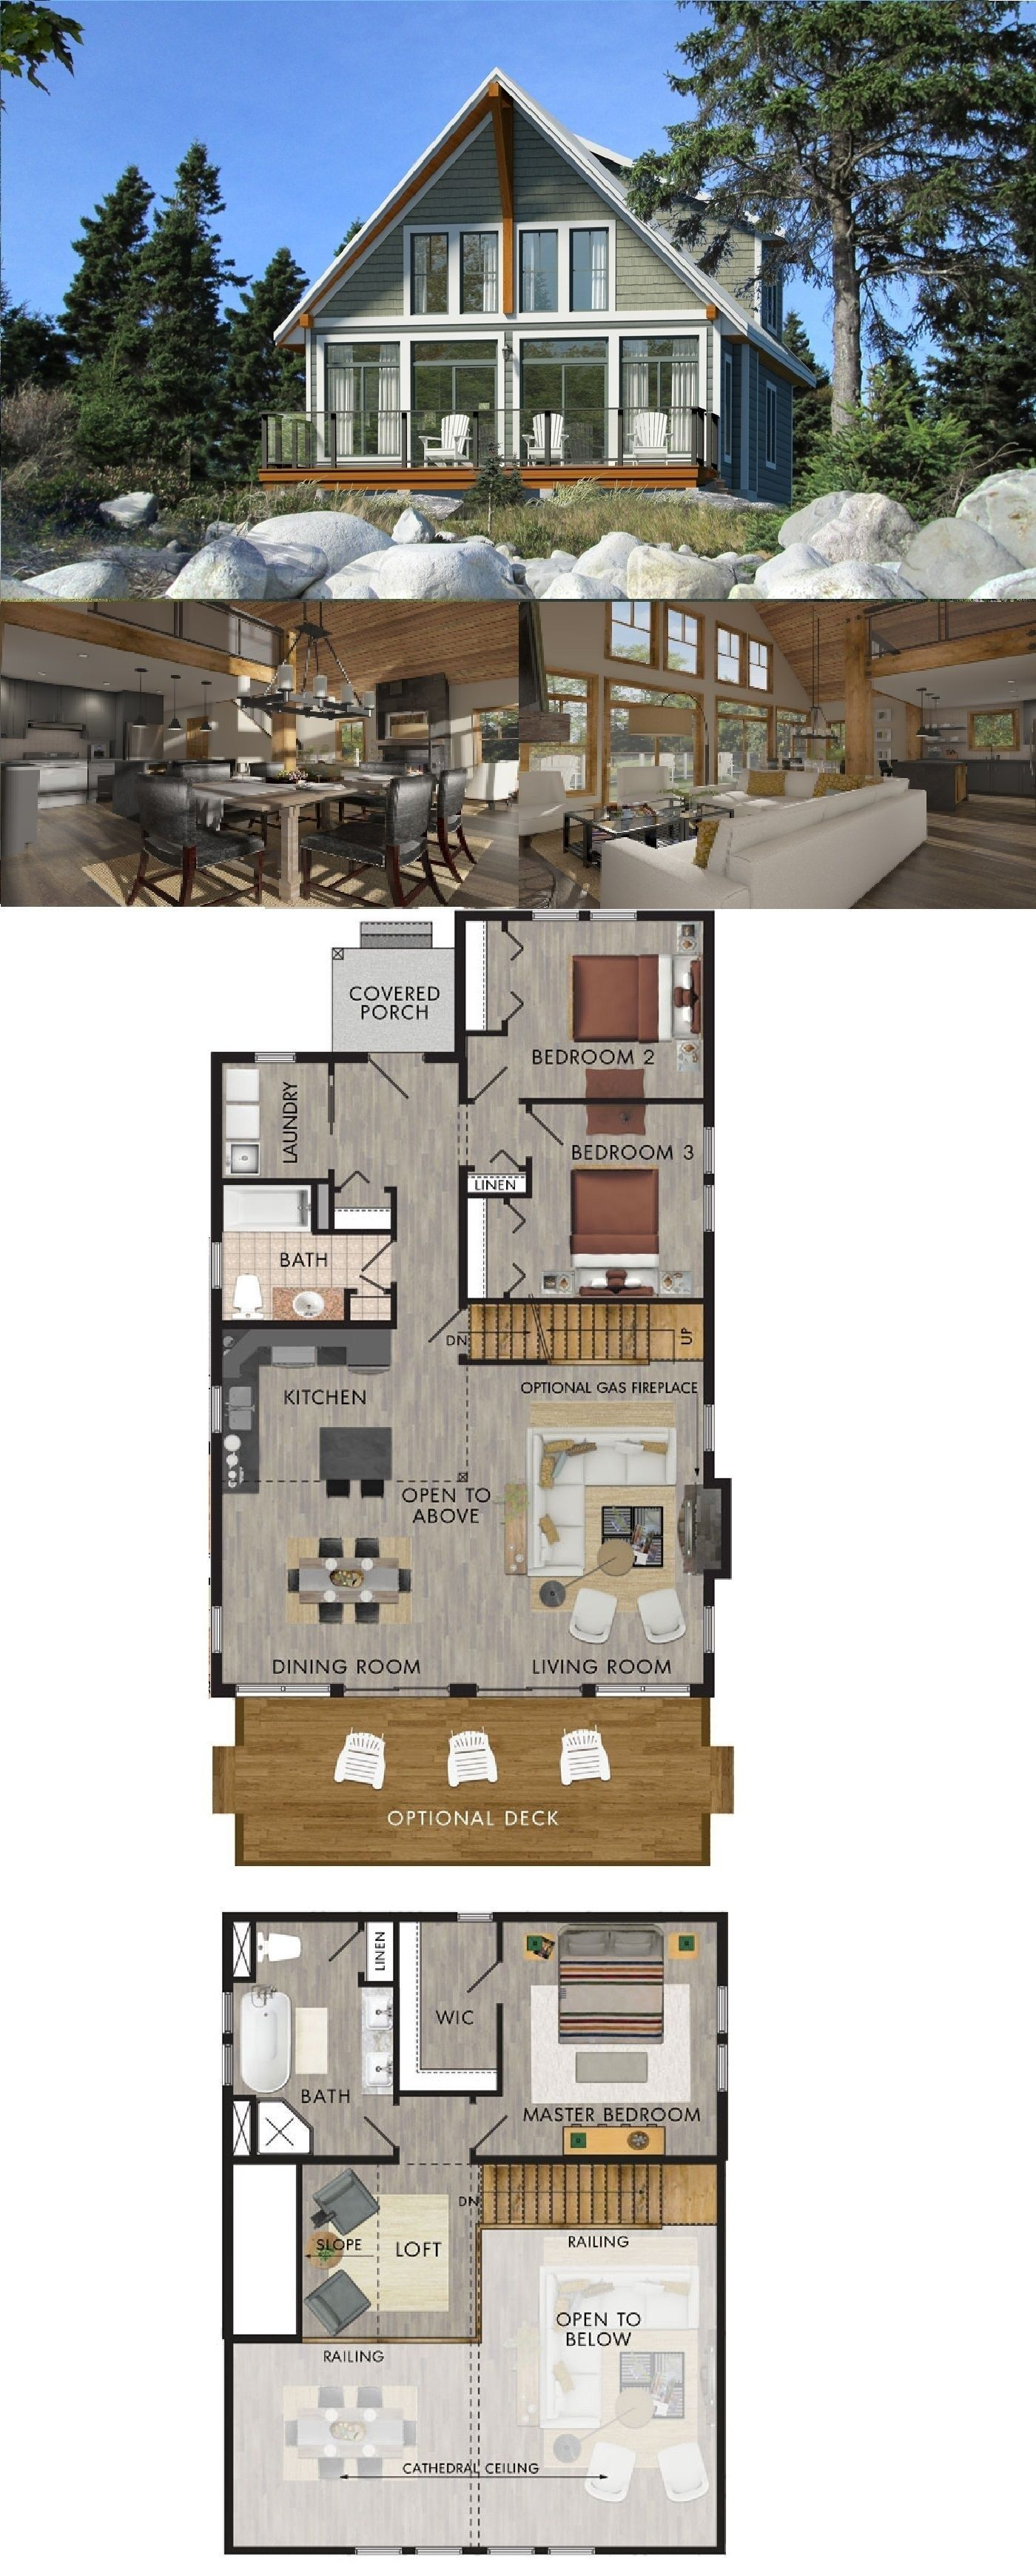 Best Of 72 Mountain Chalet House Plans Beaver Homes And Cottages Sims House Plans House Plans